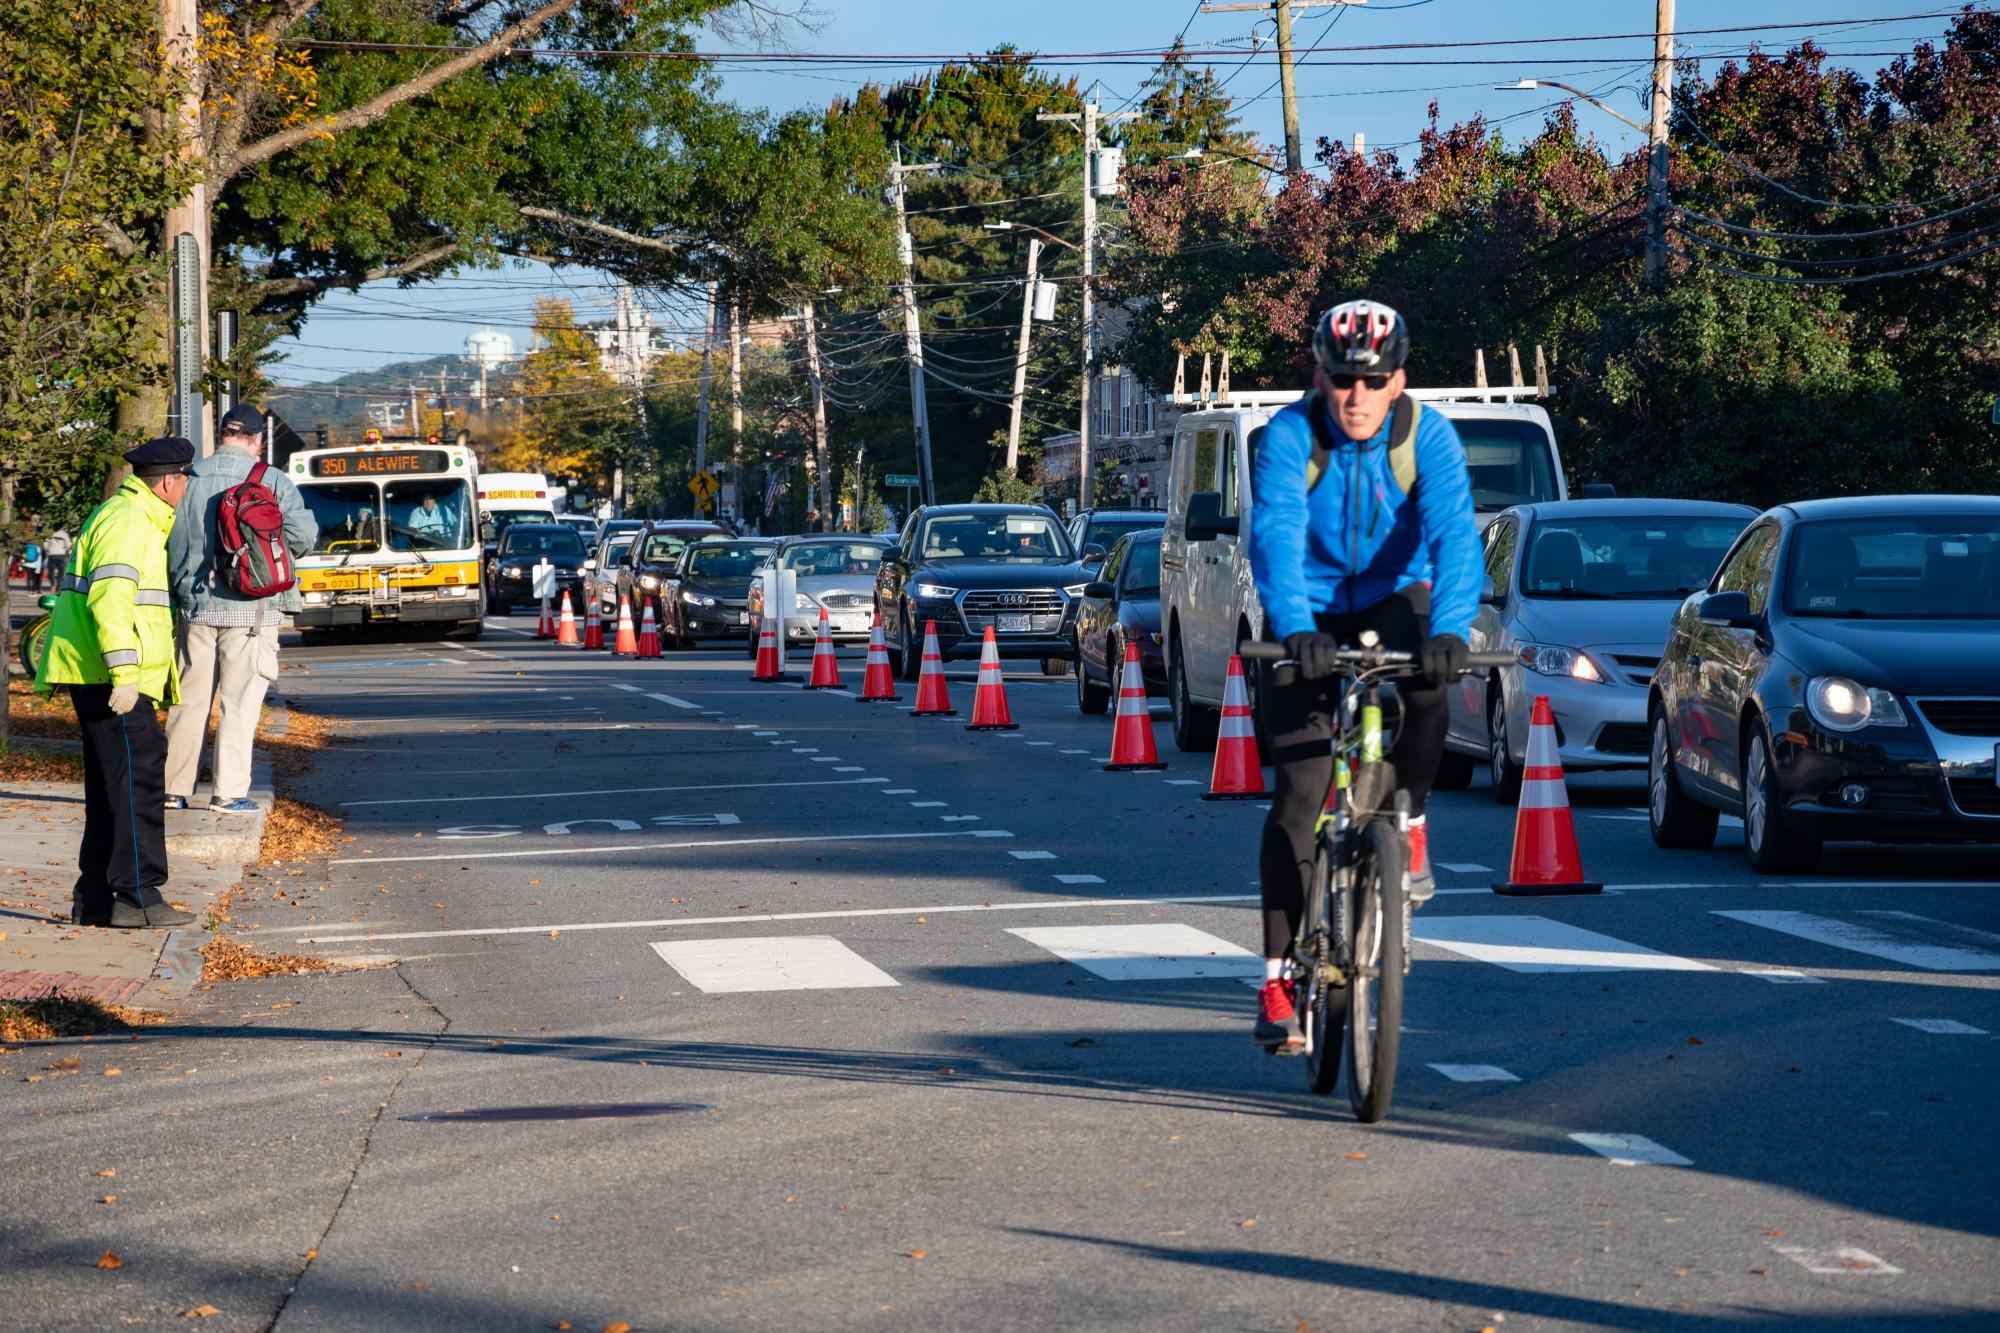 A cyclist rides in the shared bus/bike lane during the Arlington pilot.